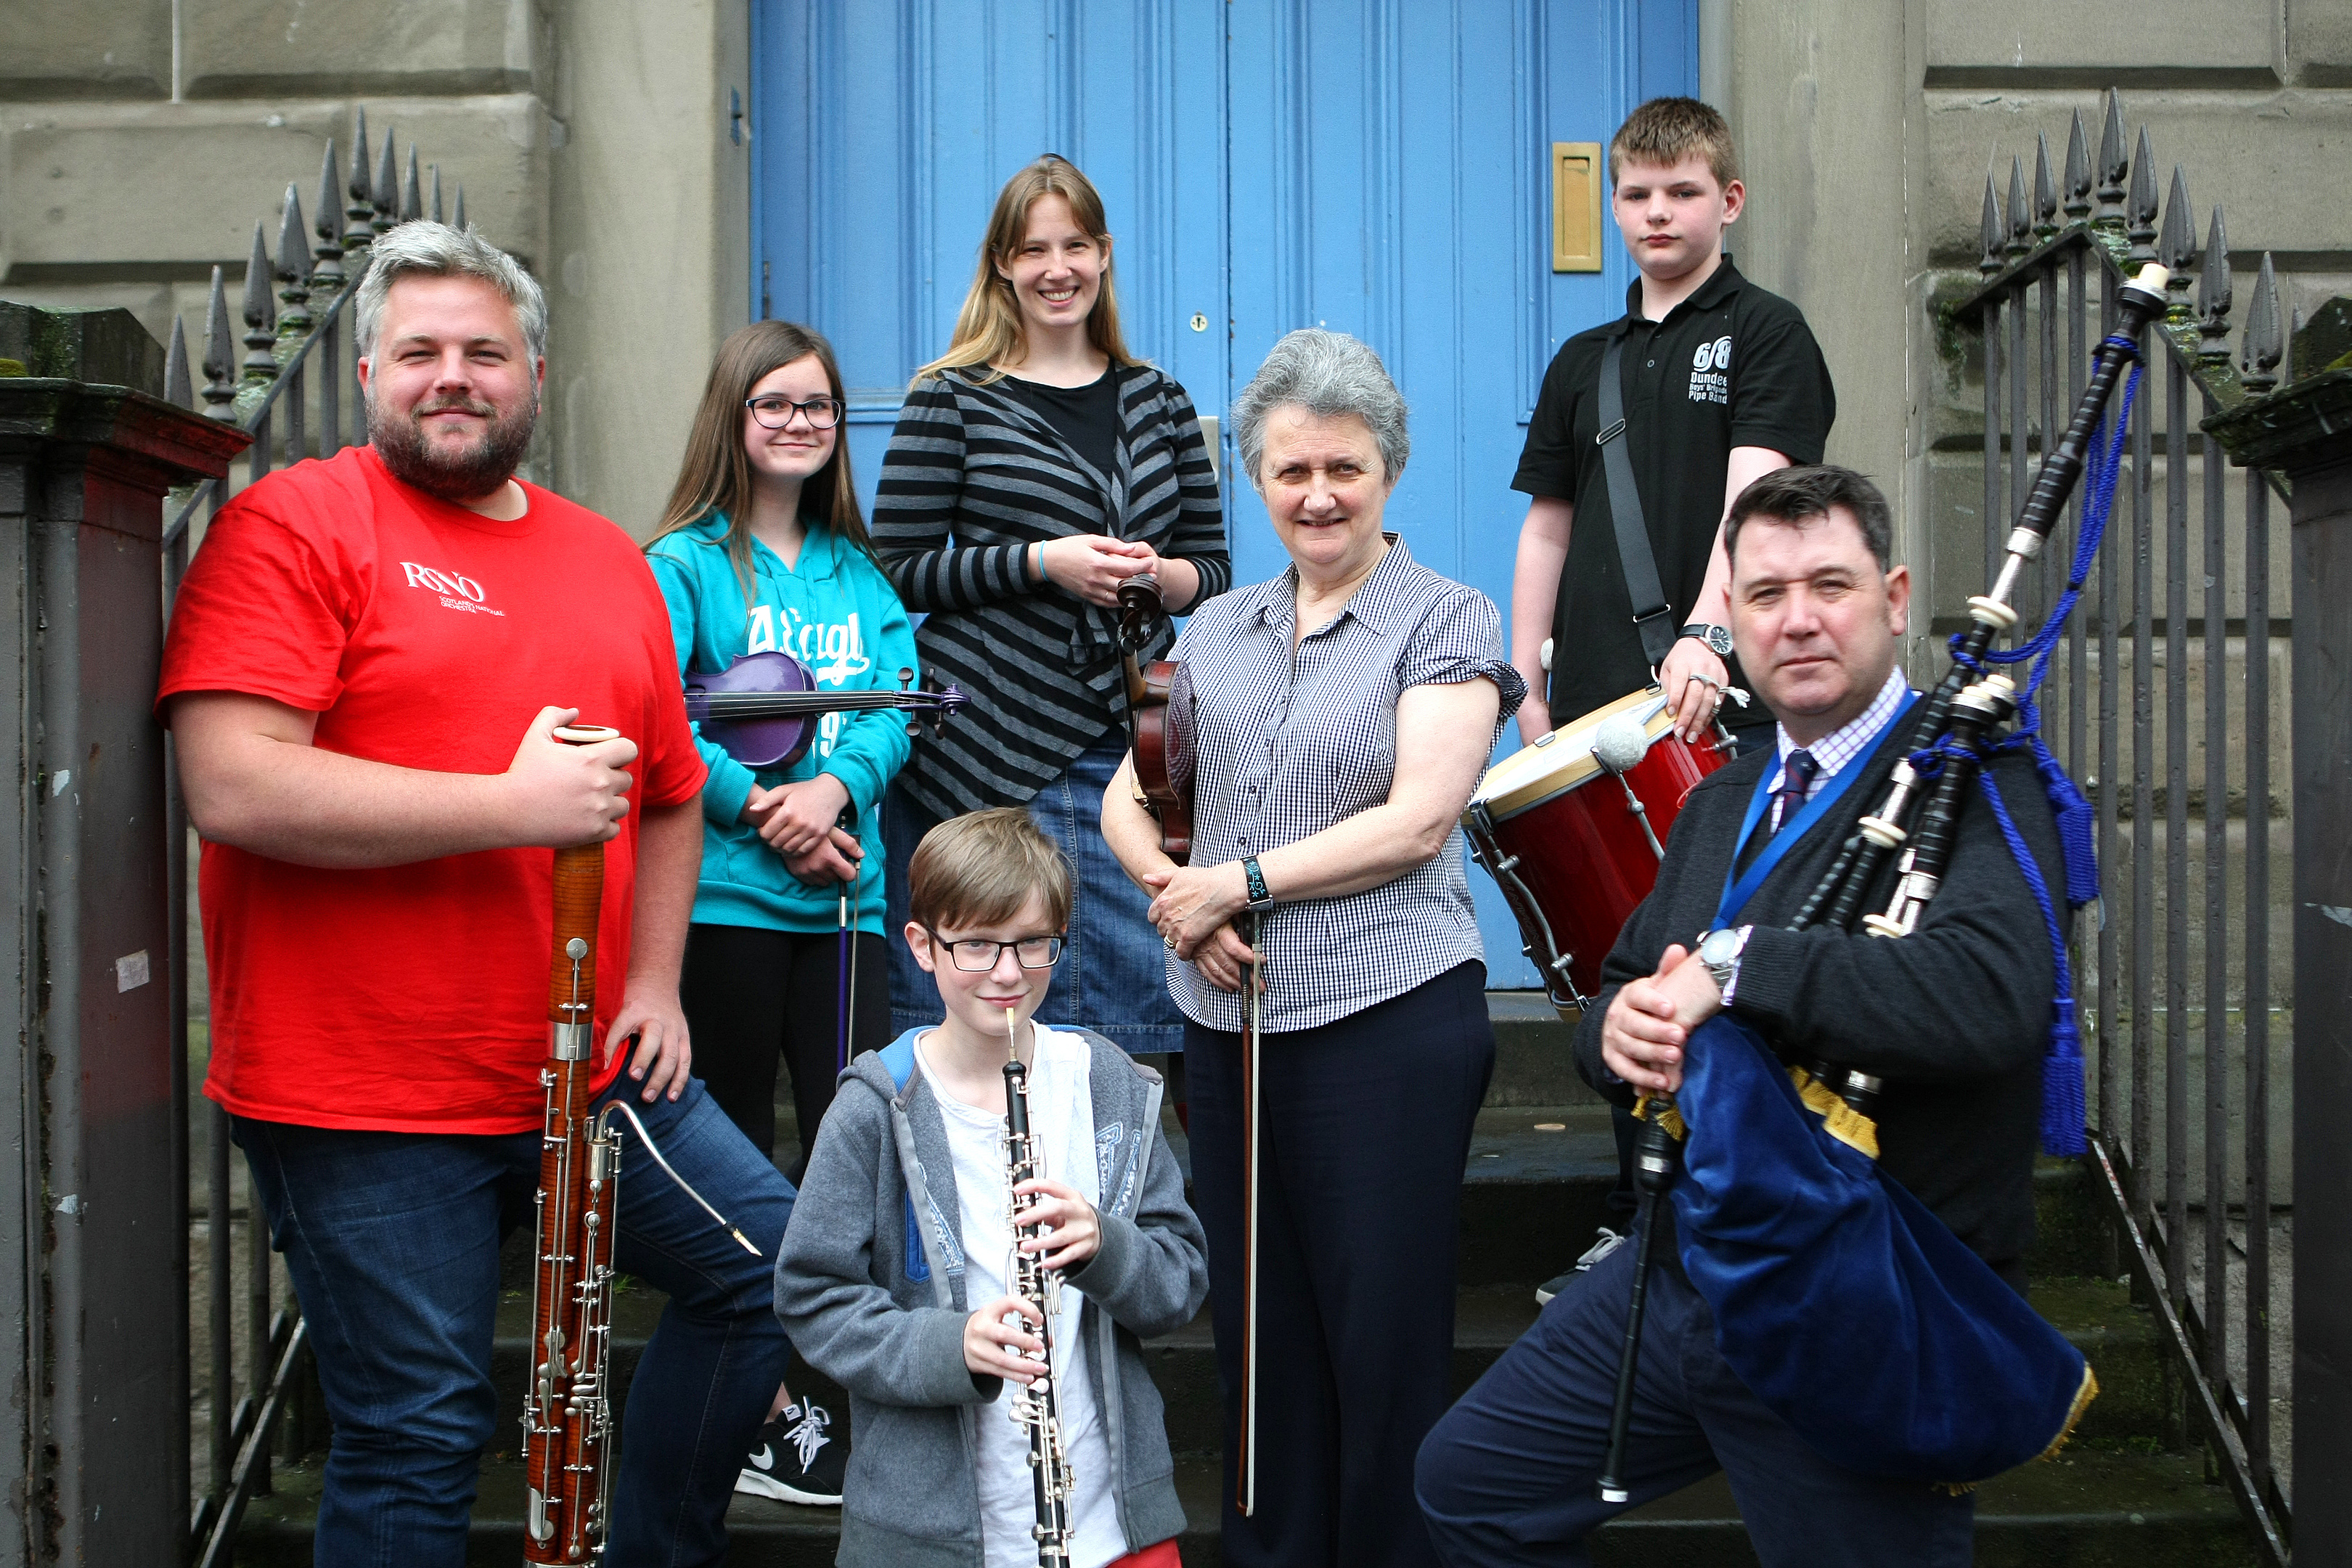 Pupils from Harris Academy and Menzieshill High performed together.